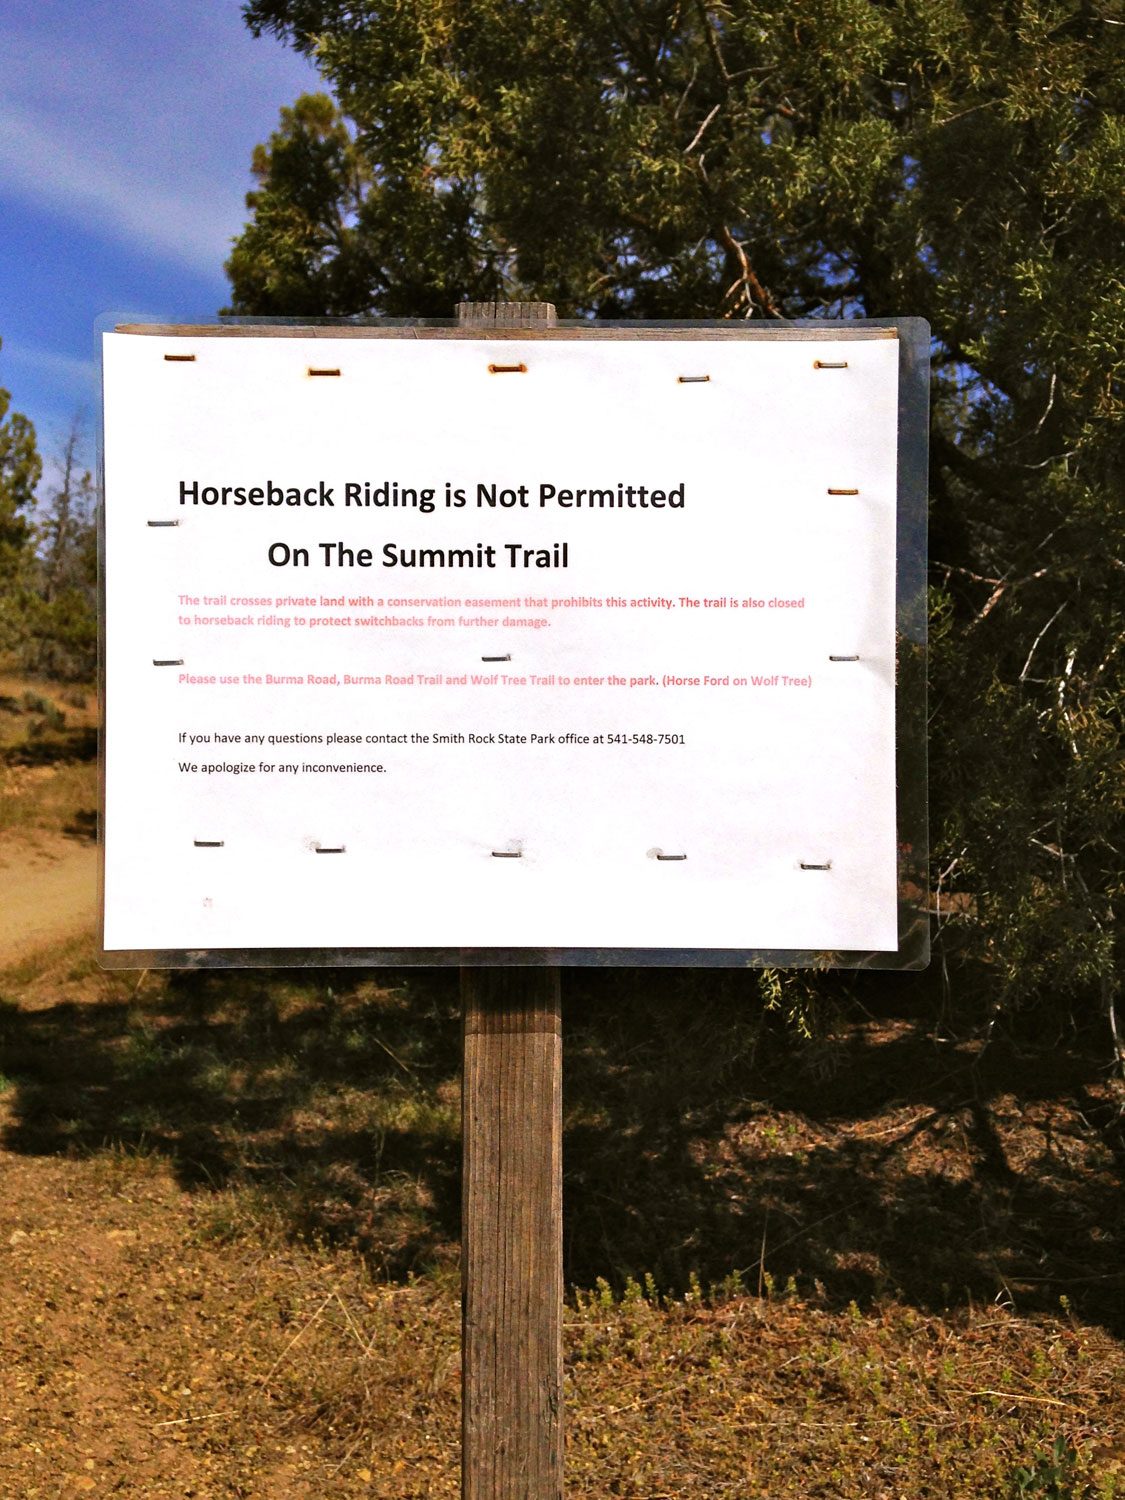 While horseback riding is permitted on the River Trail to where riders officially ford the Crooked River, it is not allowed on the Summit Trail at Smith Rock State Park.